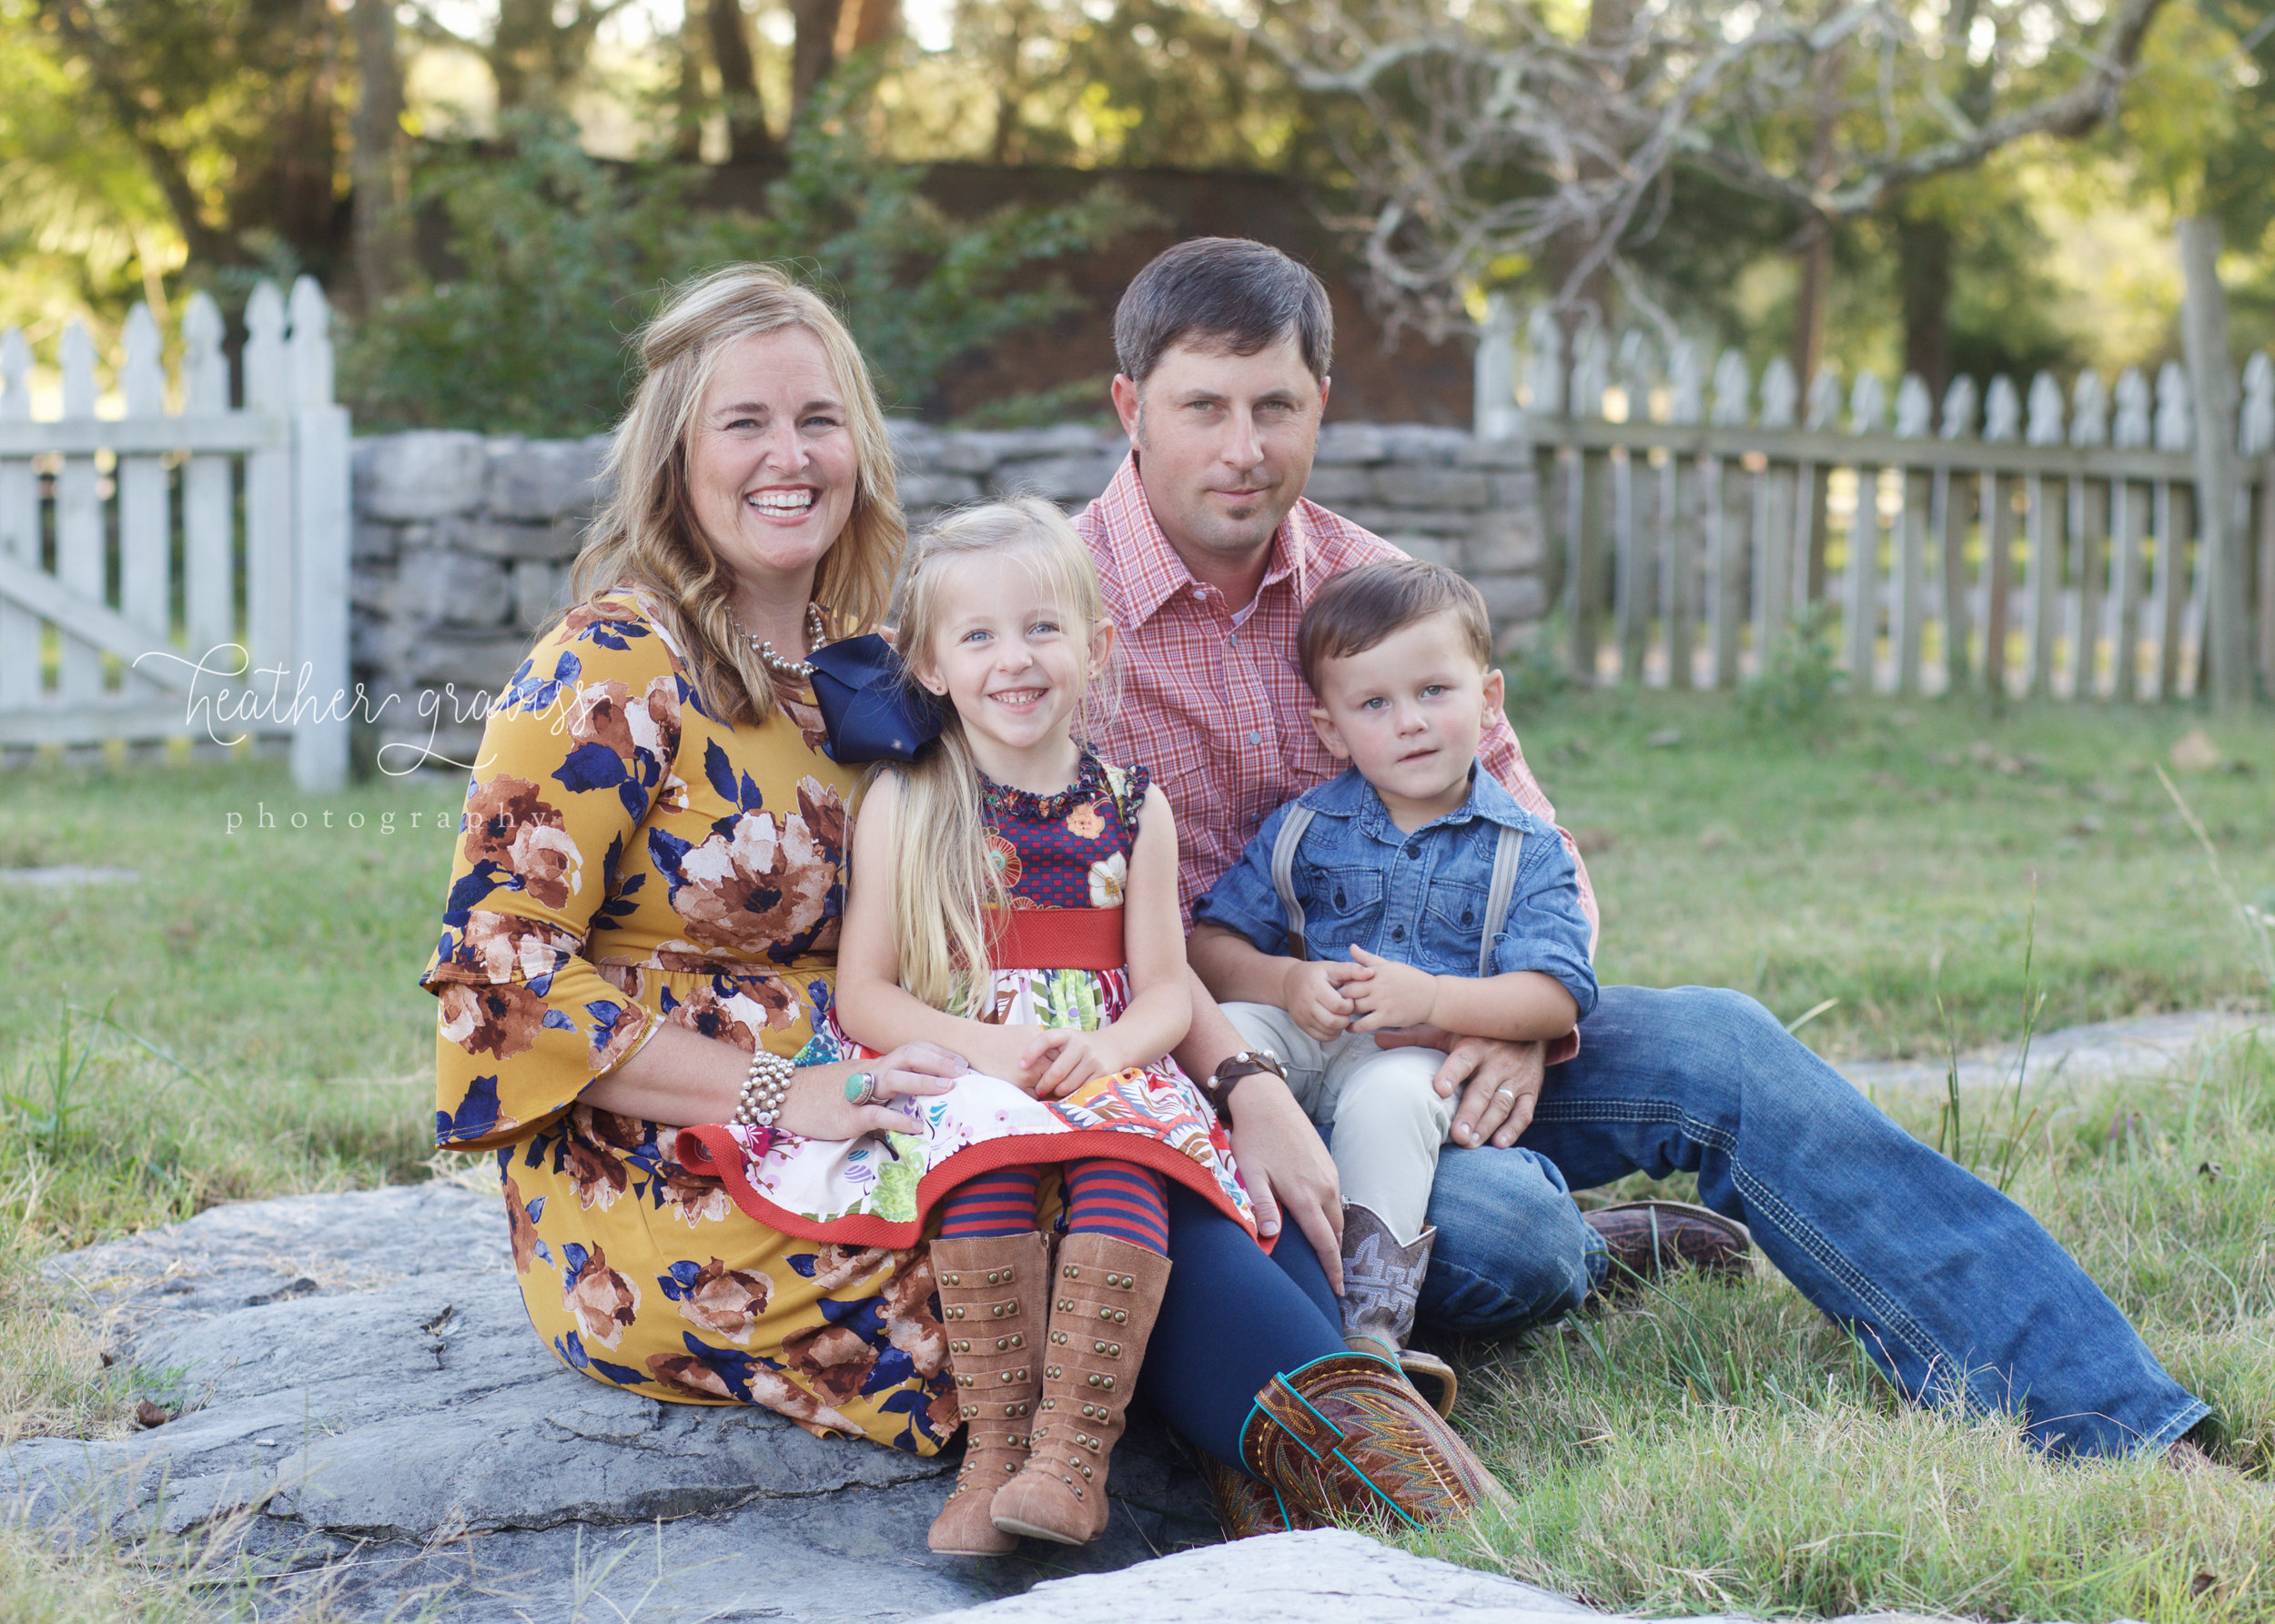 nashville middle tn family photographer 255.jpg